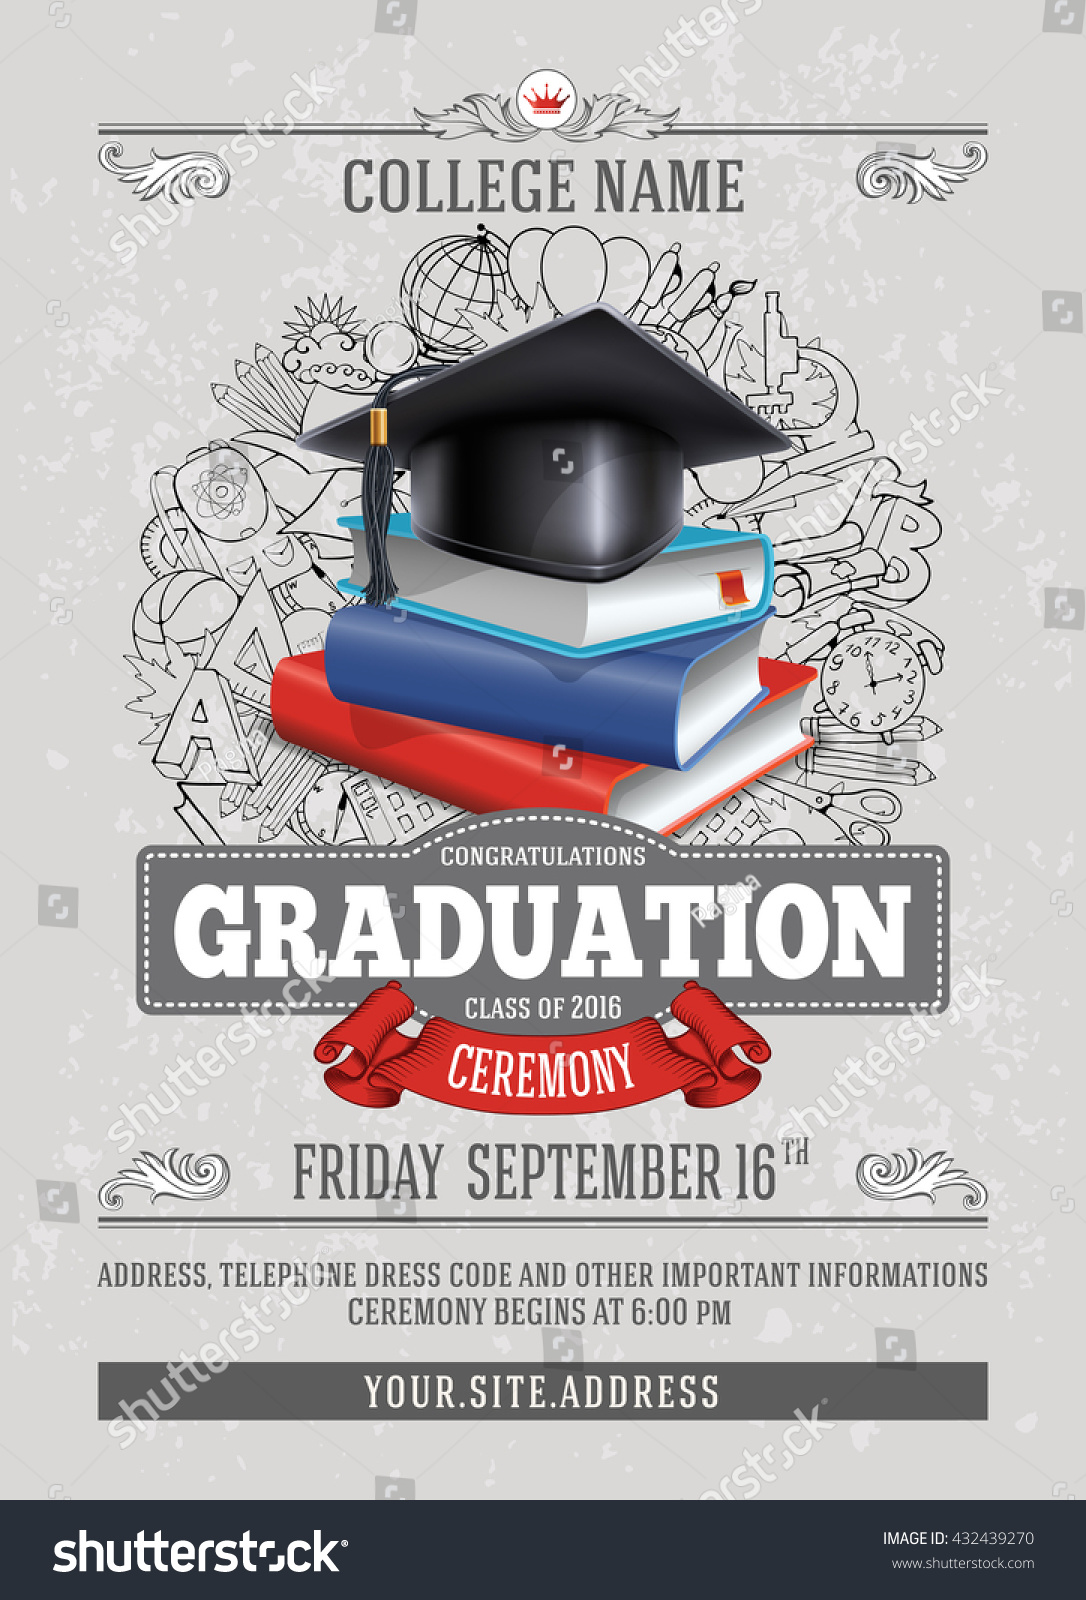 vector template announcement invitation graduation ceremony stock vector 432439270 shutterstock. Black Bedroom Furniture Sets. Home Design Ideas